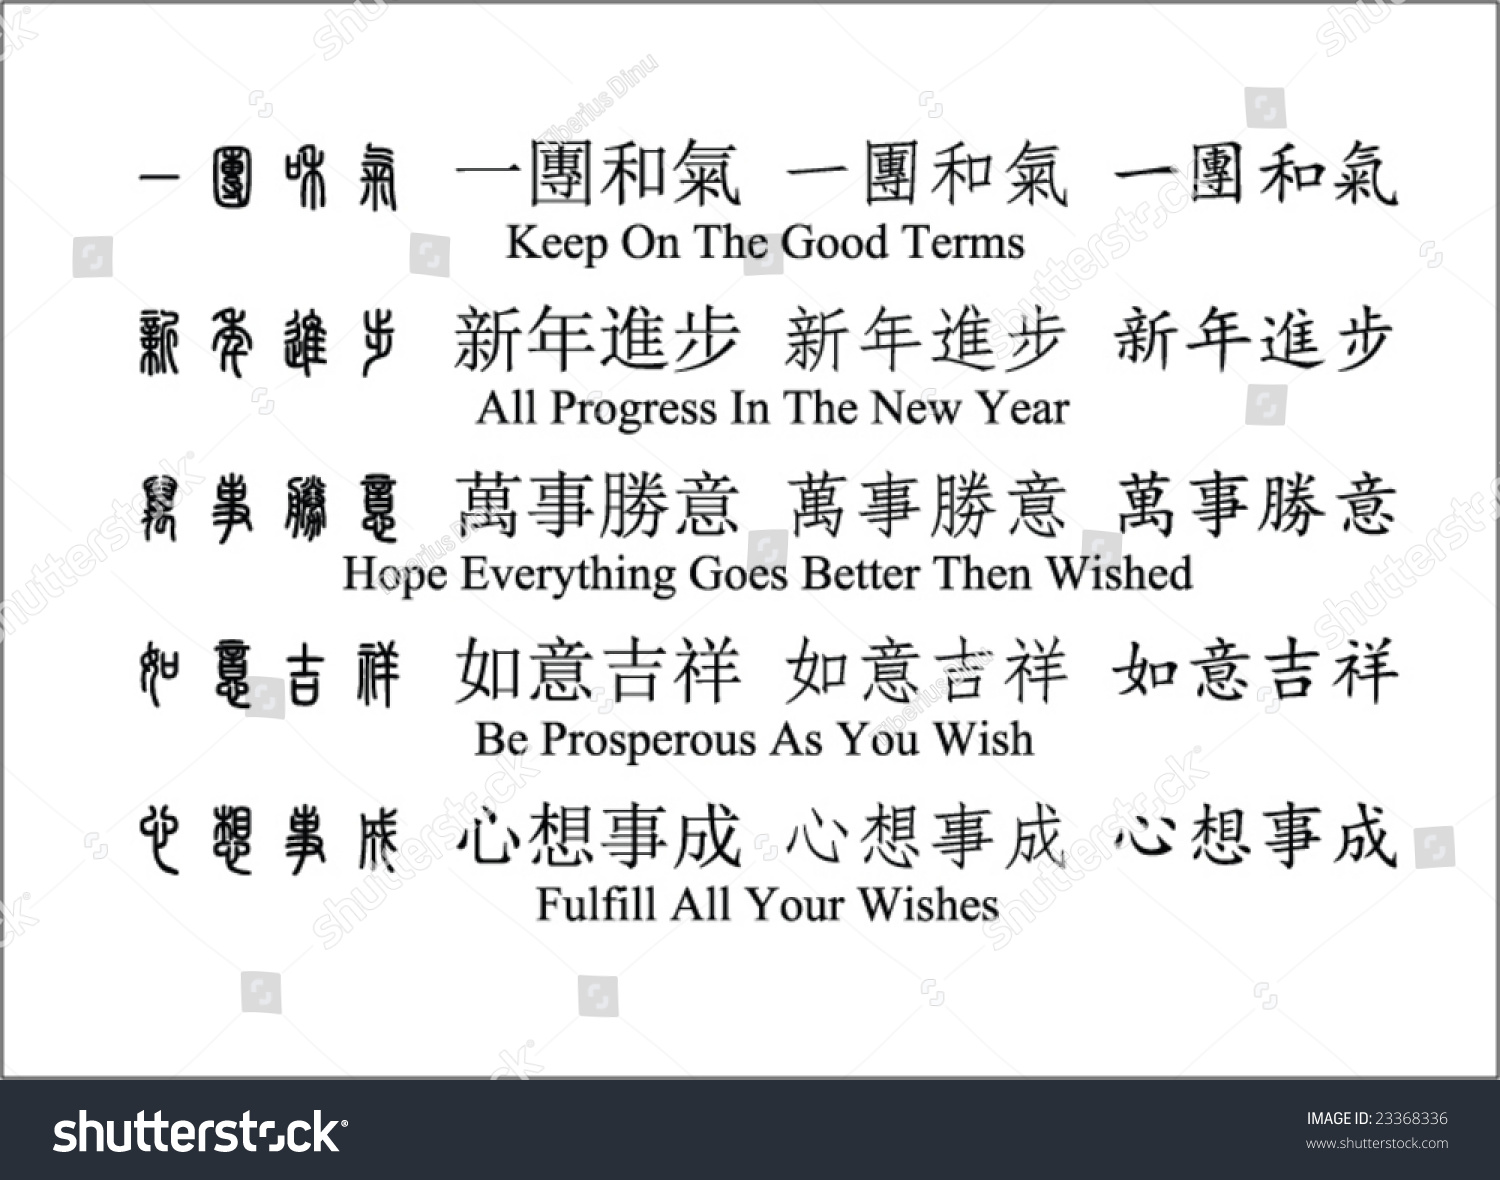 chinese new year wishes with english translation in 4 styles first style is